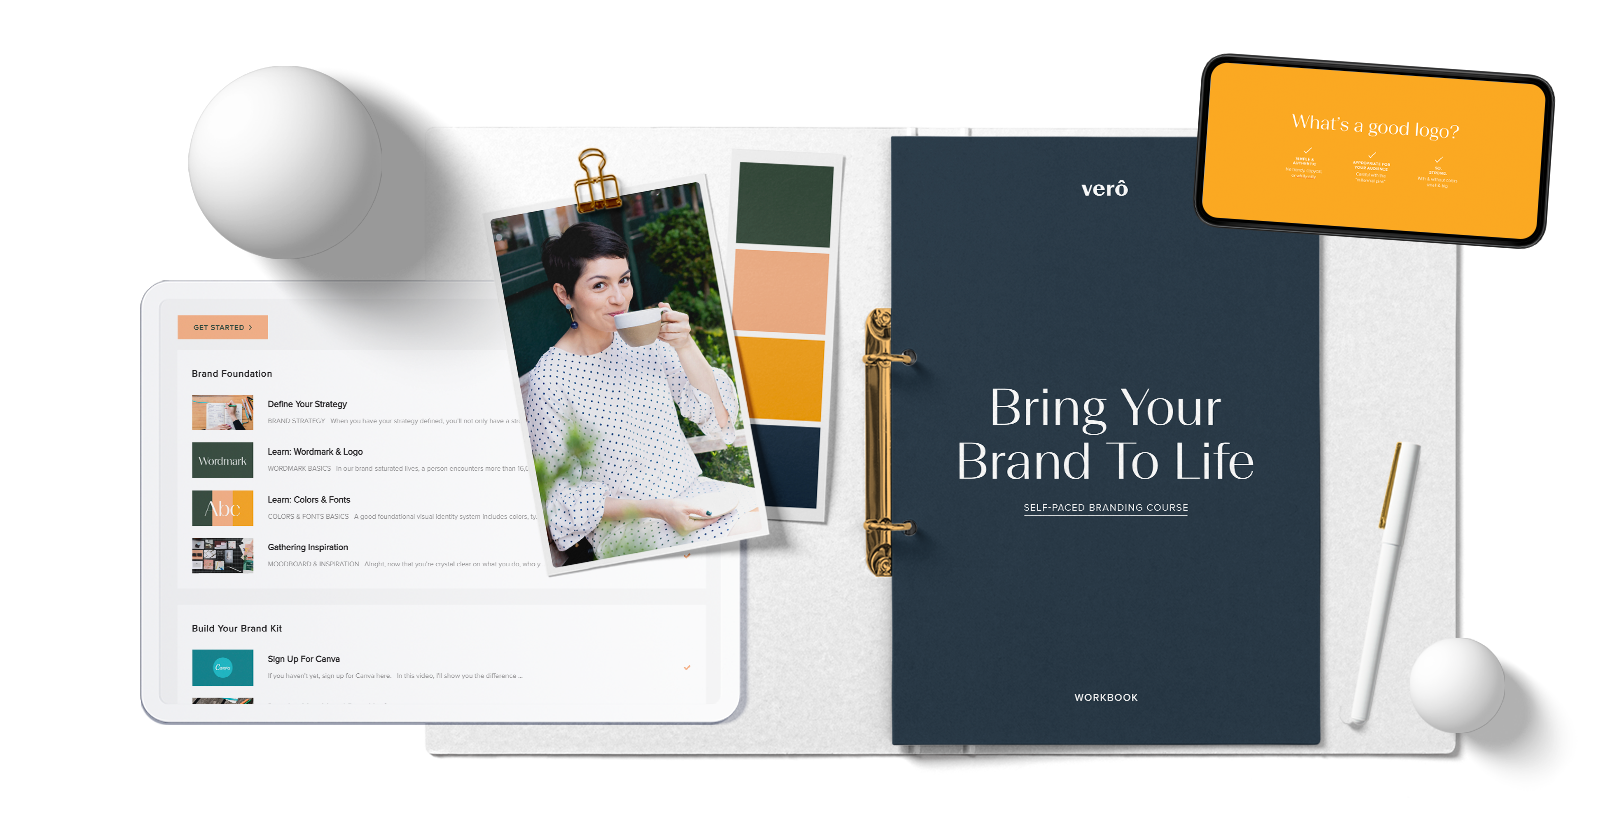 vero branding visual identity course bring your brand to life